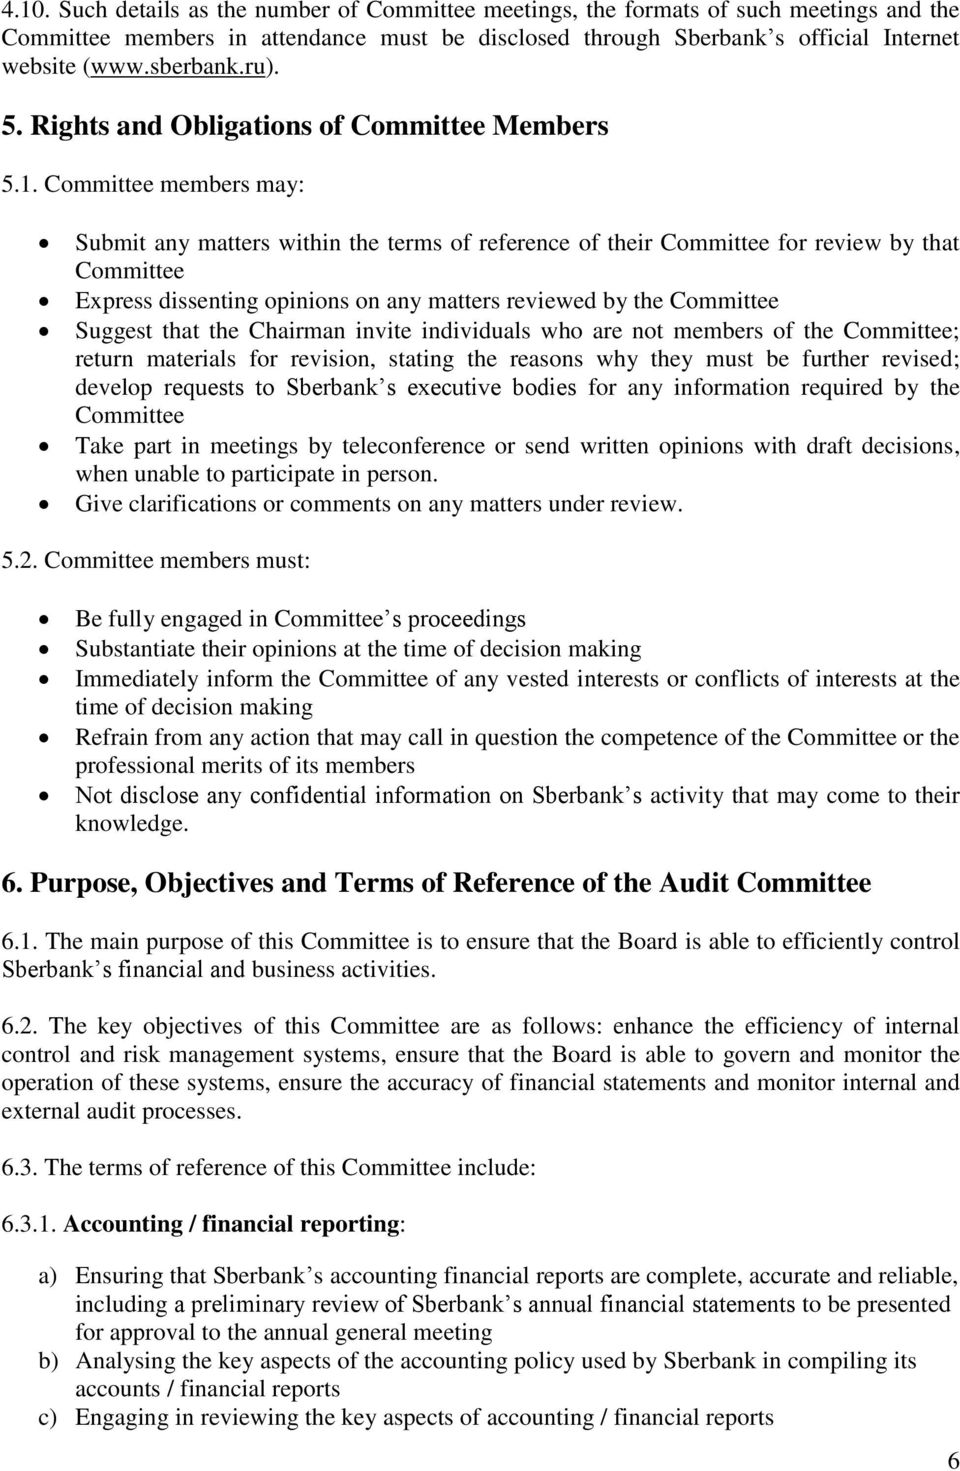 Committee members may: Submit any matters within the terms of reference of their Committee for review by that Committee Express dissenting opinions on any matters reviewed by the Committee Suggest